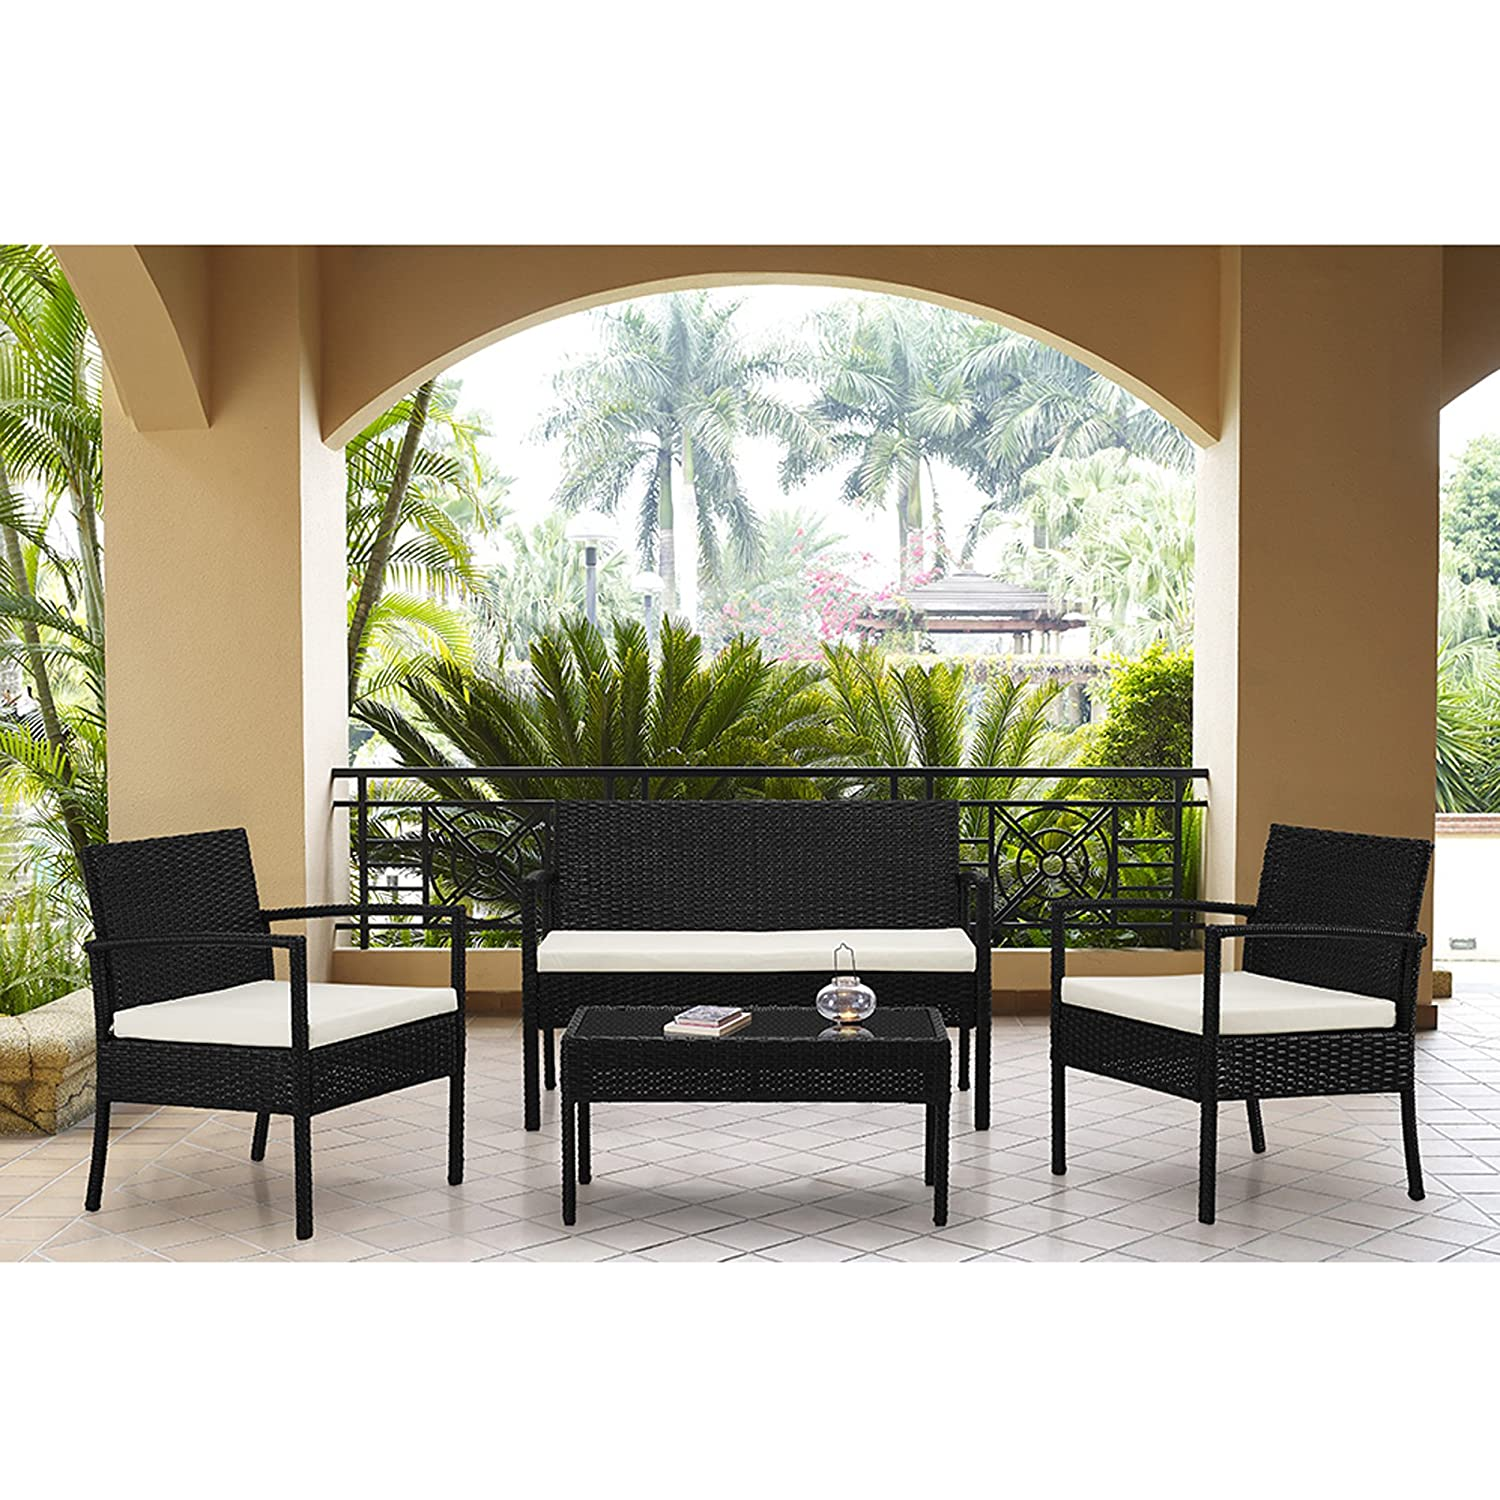 Amazon Patio Furniture Set Clearance Dining Set 4 Piece